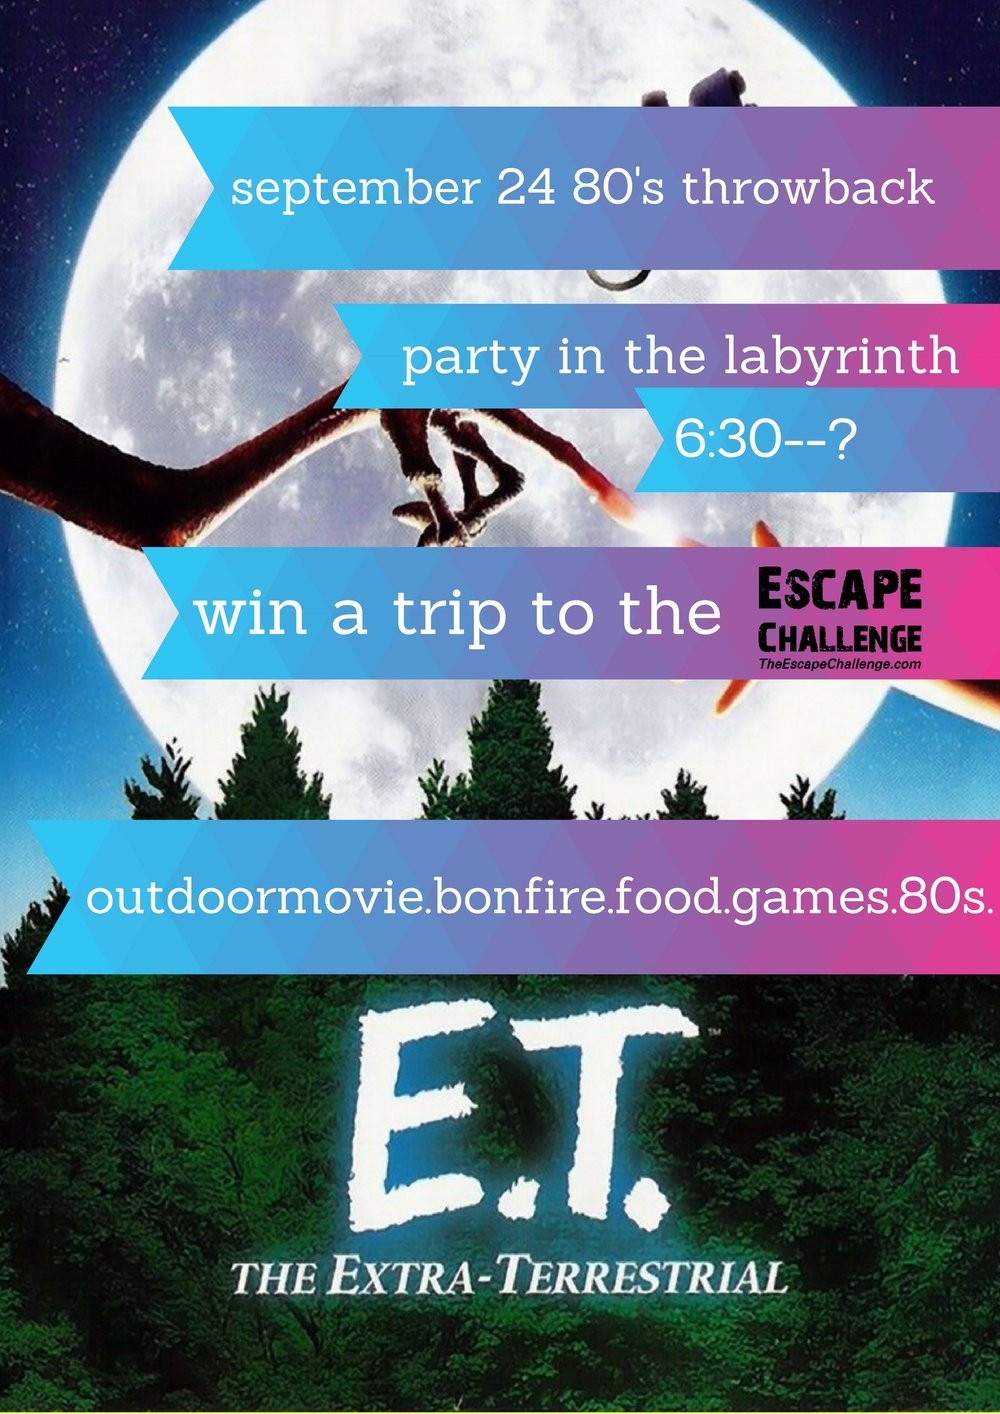 Party in the Labyrinth!Outdoor movie, dessert potluck contest- bring your best and most creative! Popcorn, games and dessert.jpg